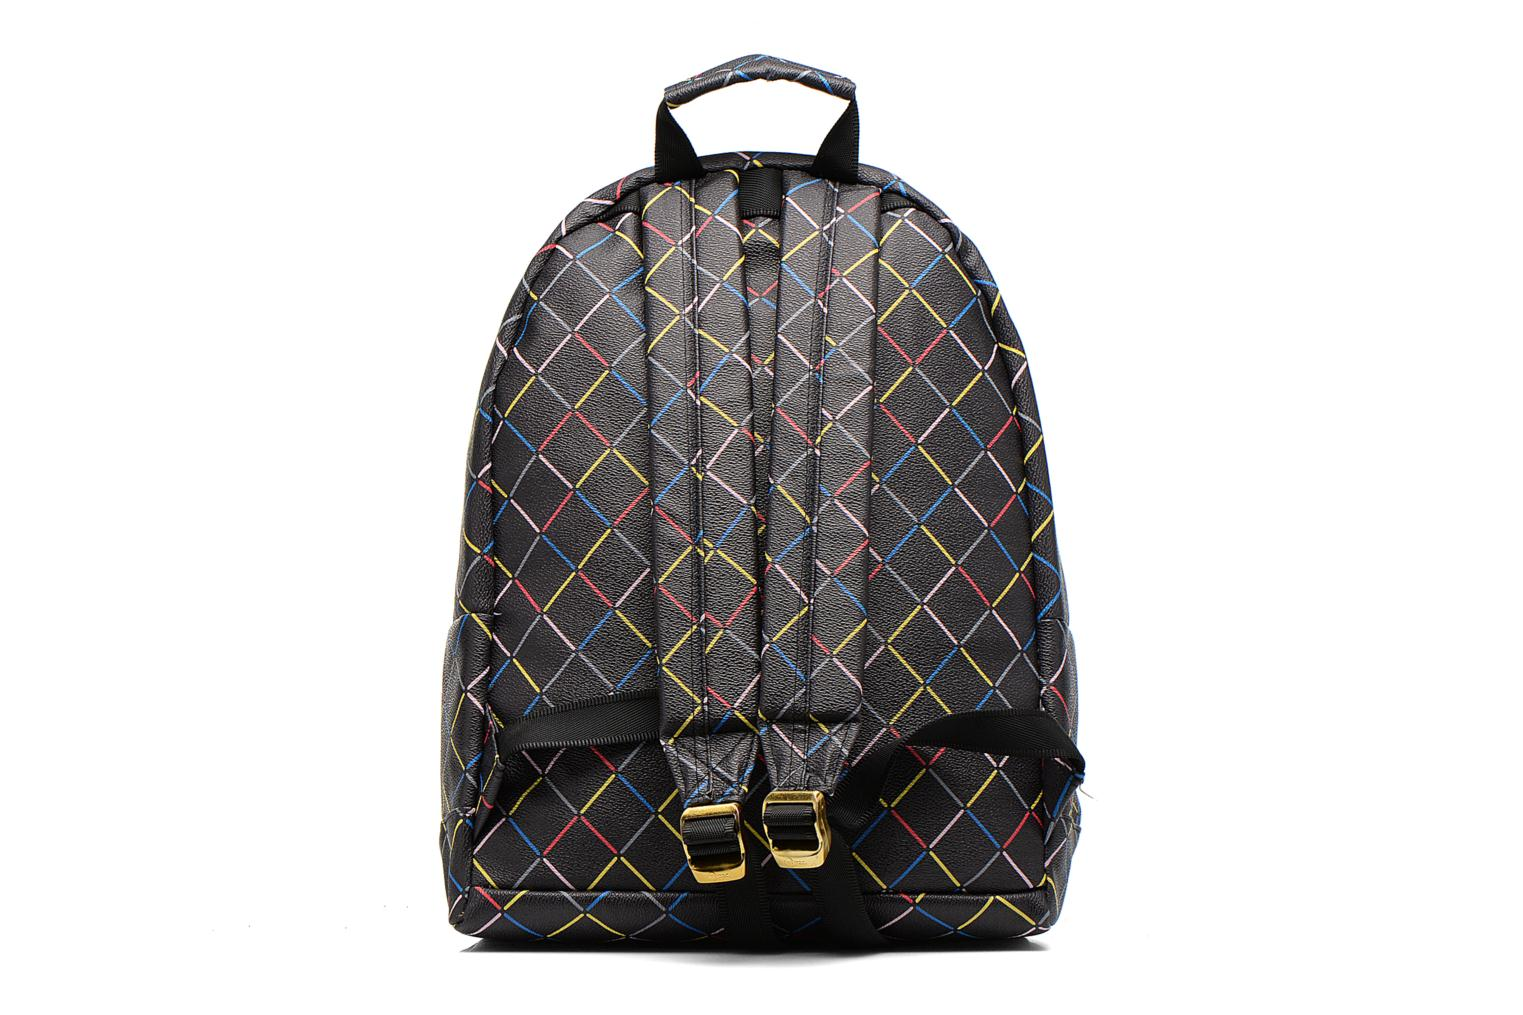 Gold crisscross Backpack Black